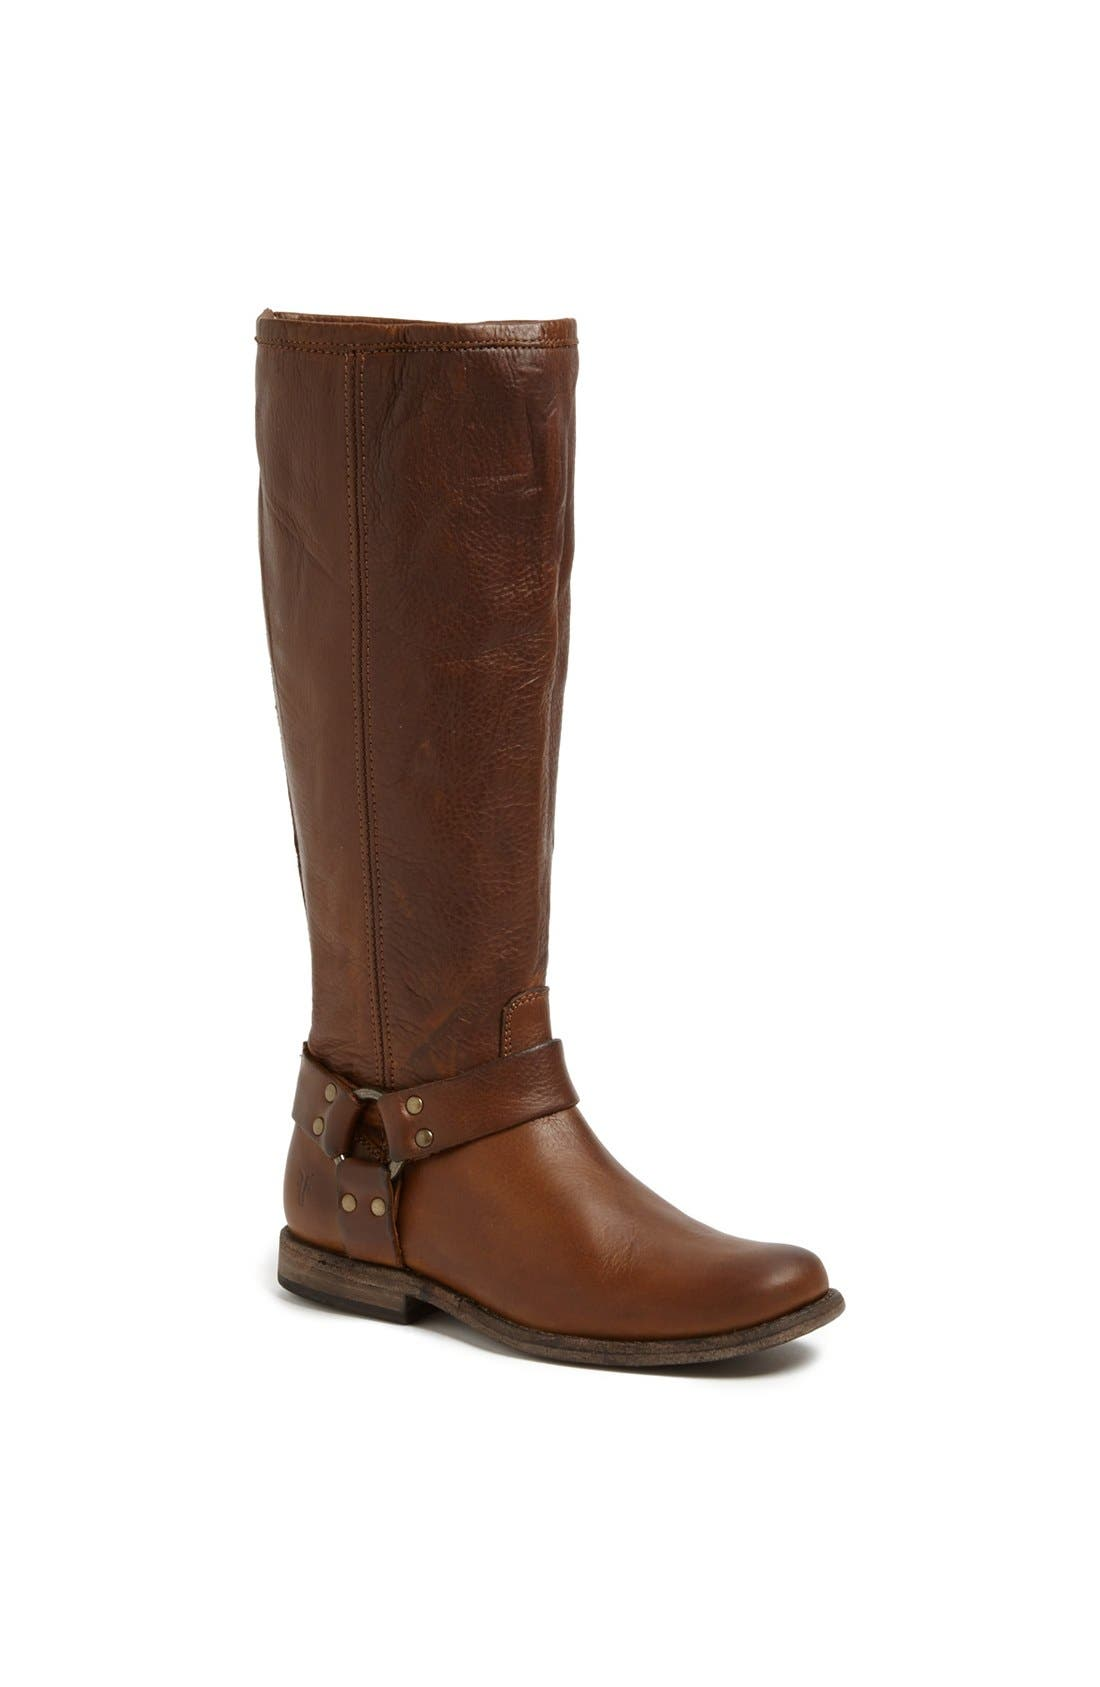 Alternate Image 1 Selected - Frye 'Phillip Harness' Tall Washed Leather Riding Boot (Wide Calf) (Women)